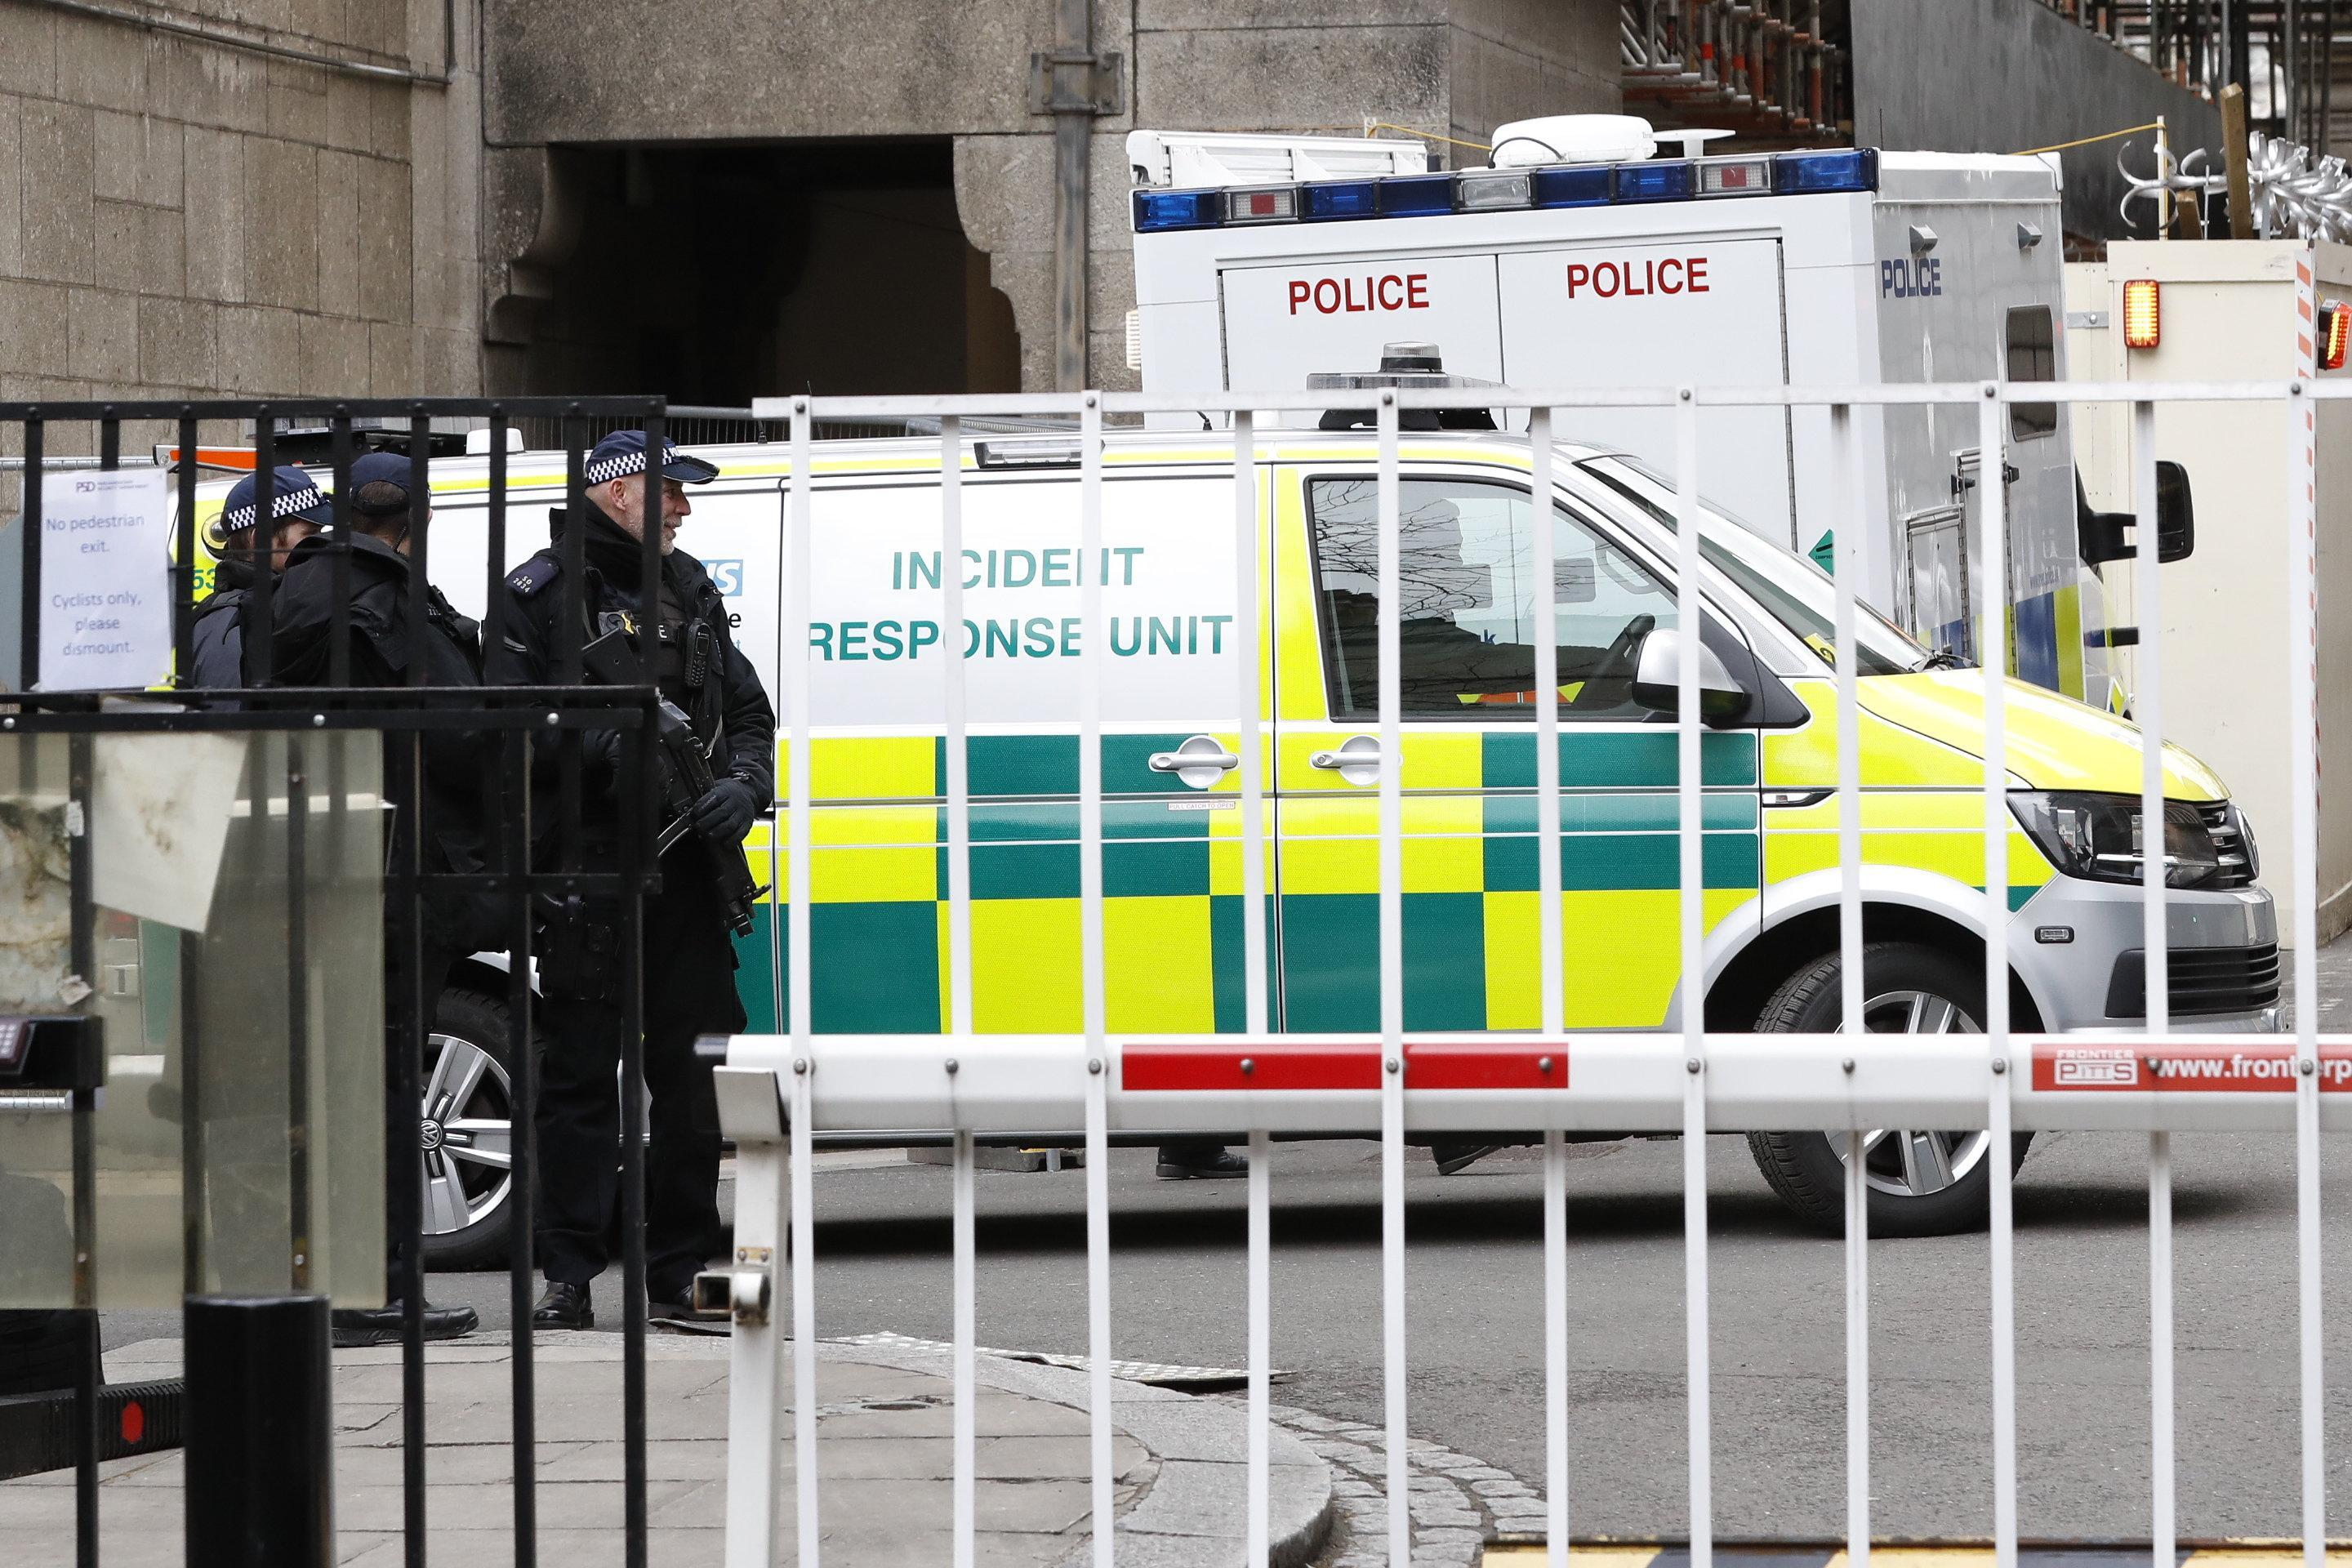 Parliament call in police again after MPs are sent FOUR suspicious packages in just 24 hours – but none were dangerous